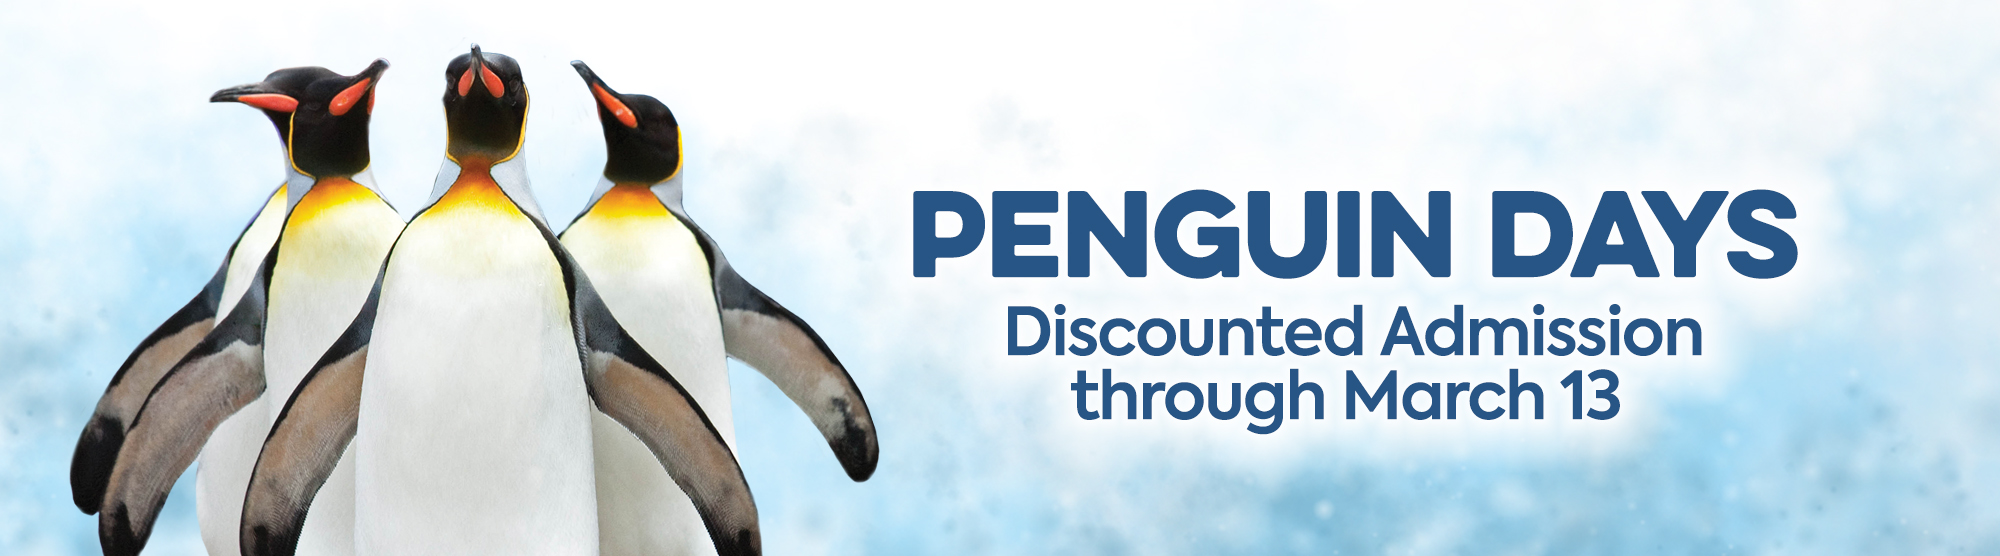 penguin days discounted admission through march 13